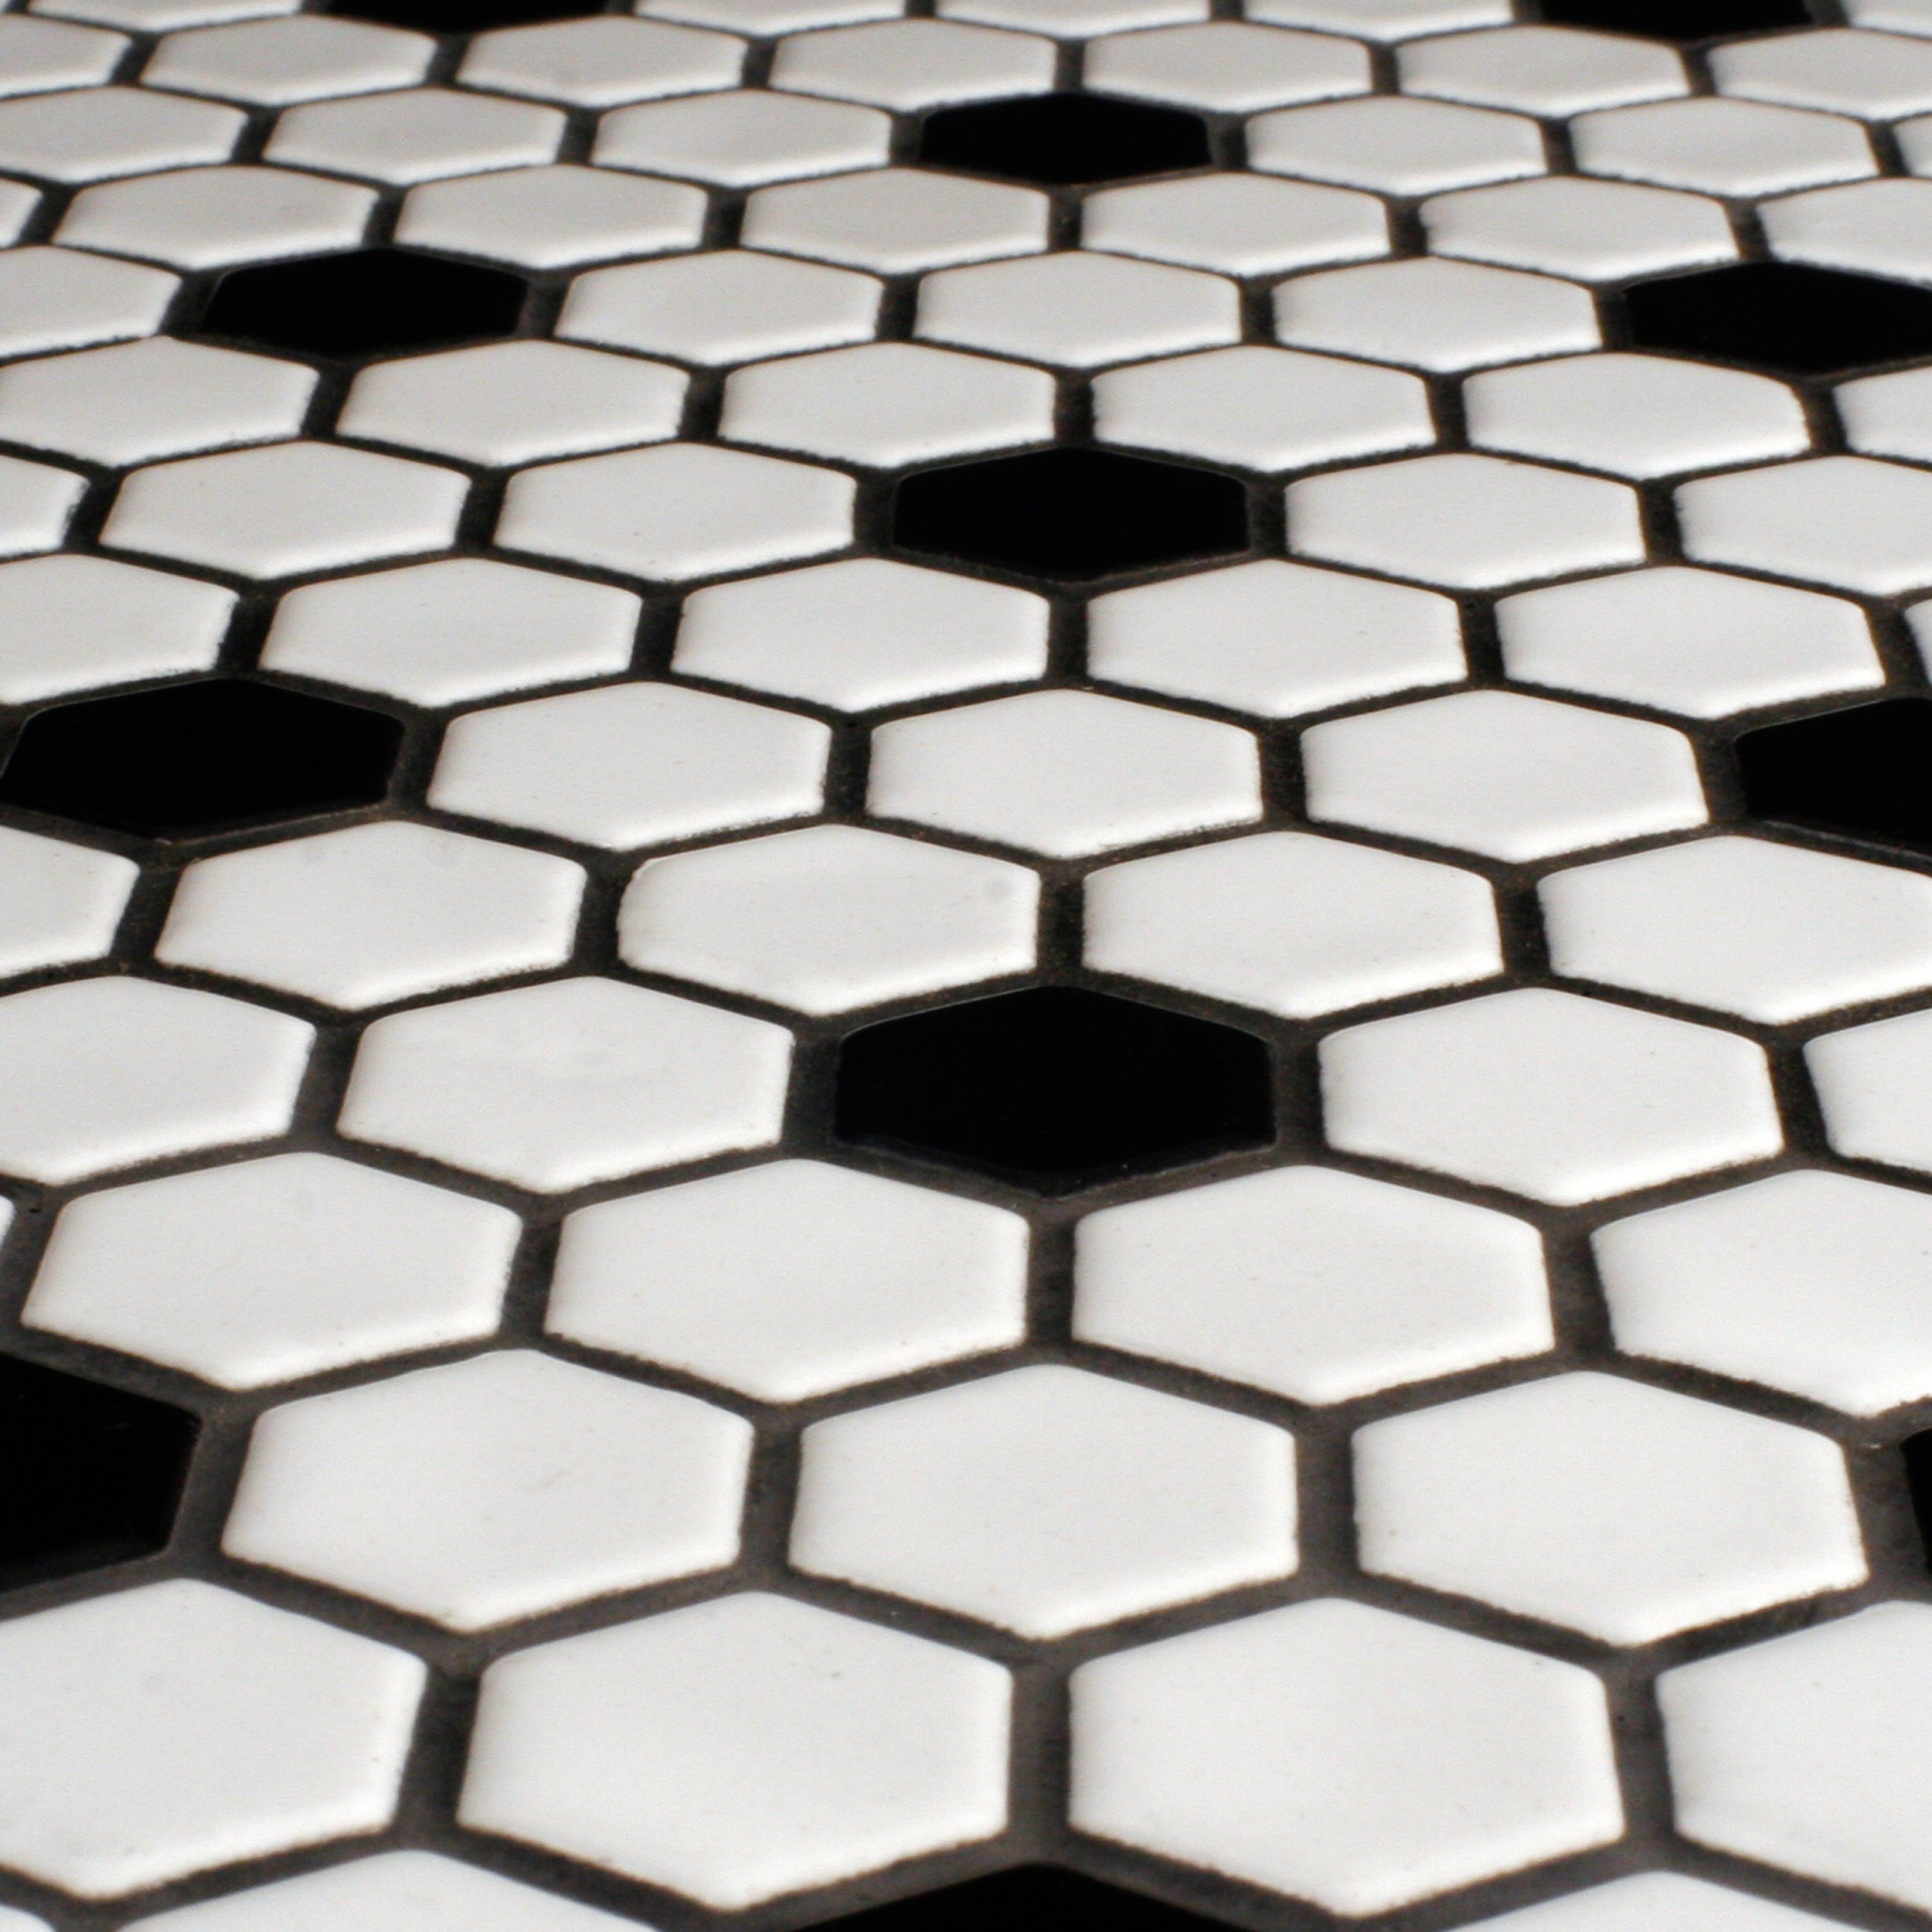 Black And White Tile With Black Grout - Tile Designs